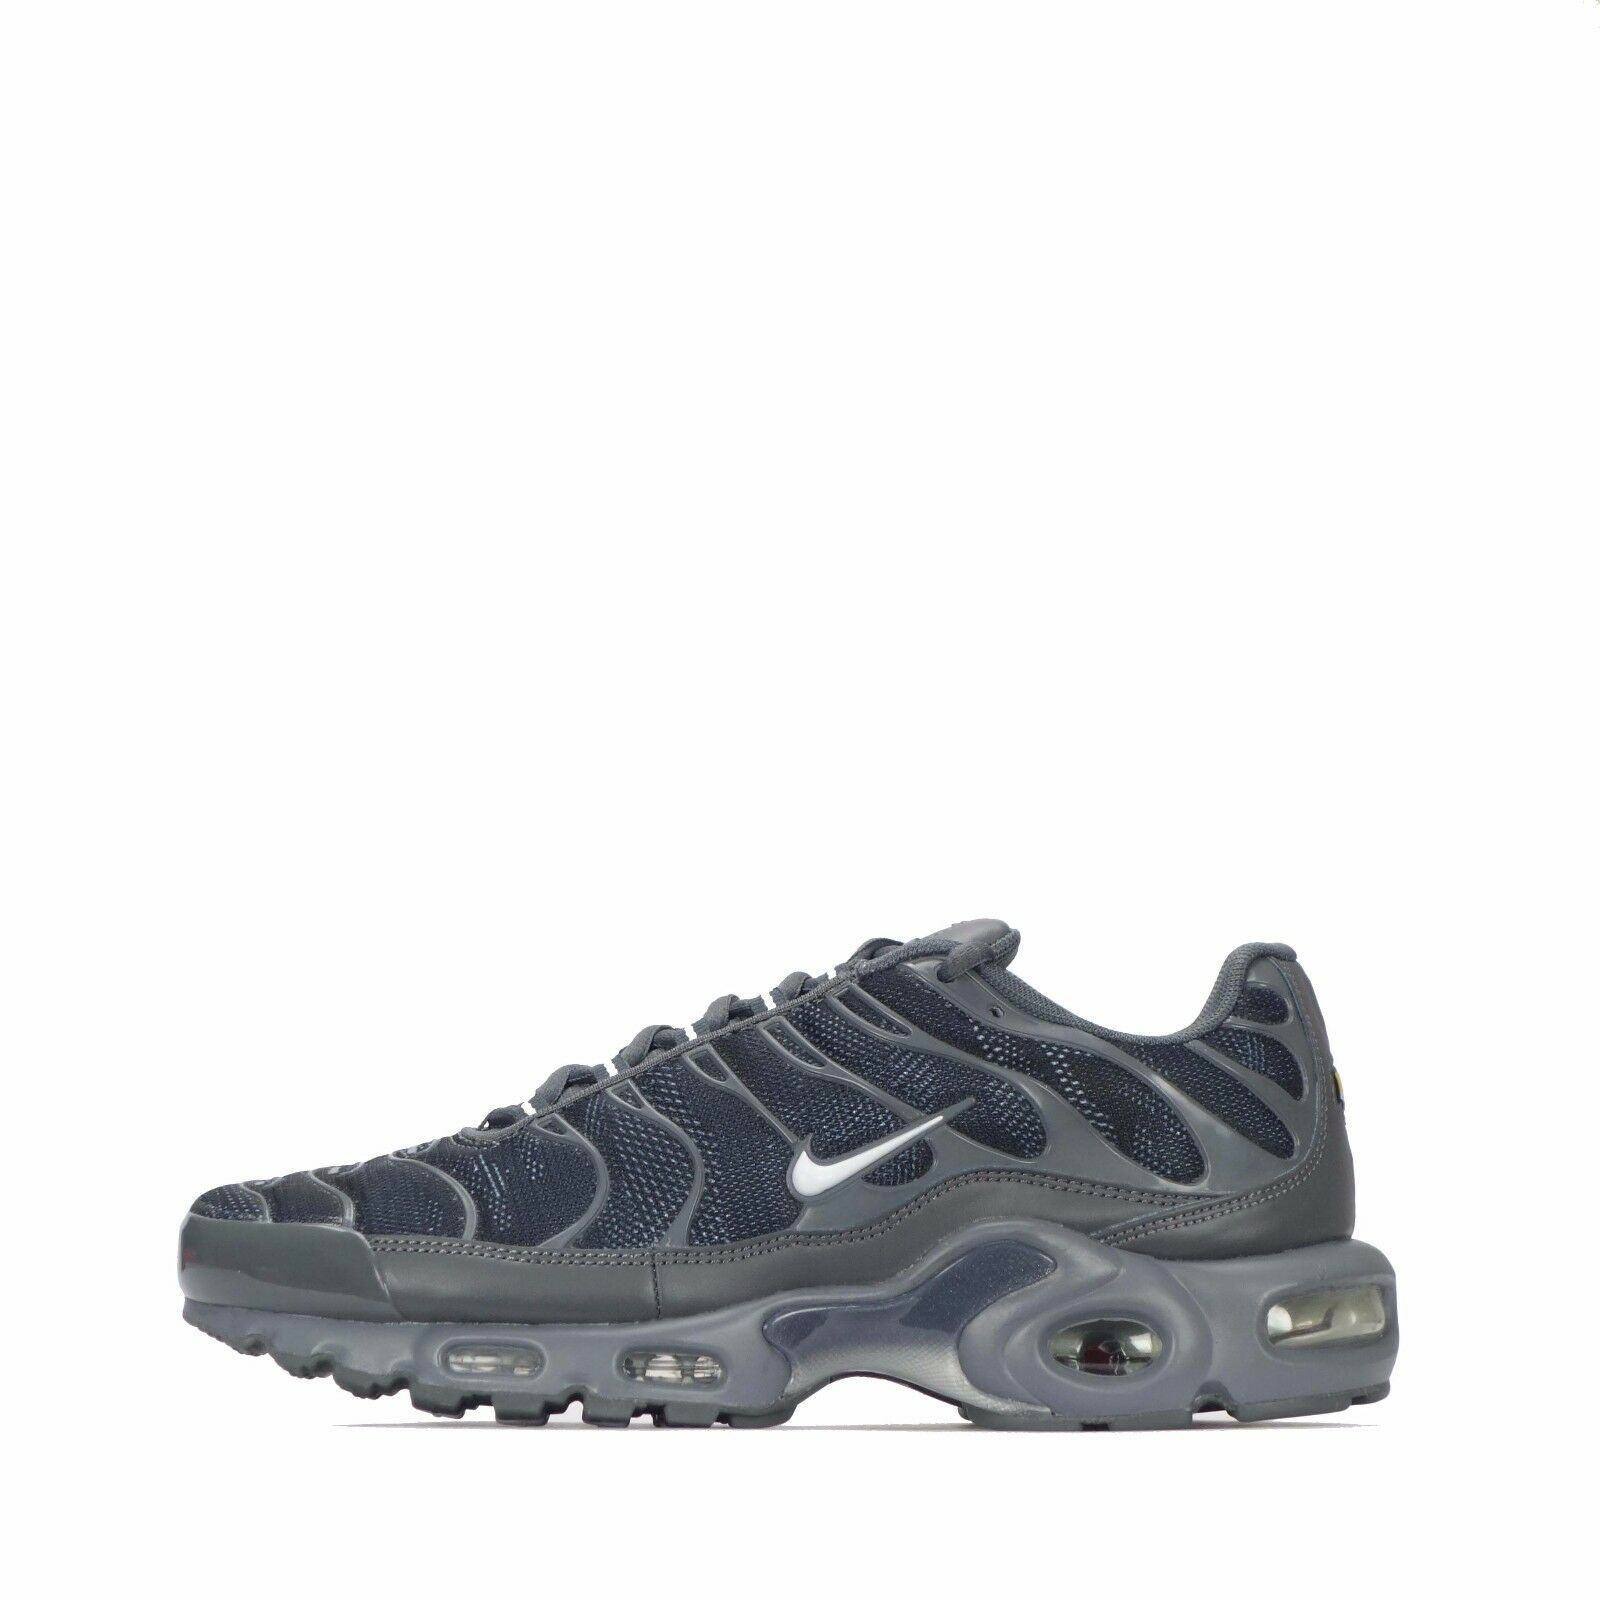 Nike Air Max Plus GPX TN Tuned Men's Shoes in Dark Grey/White RRP 139.99